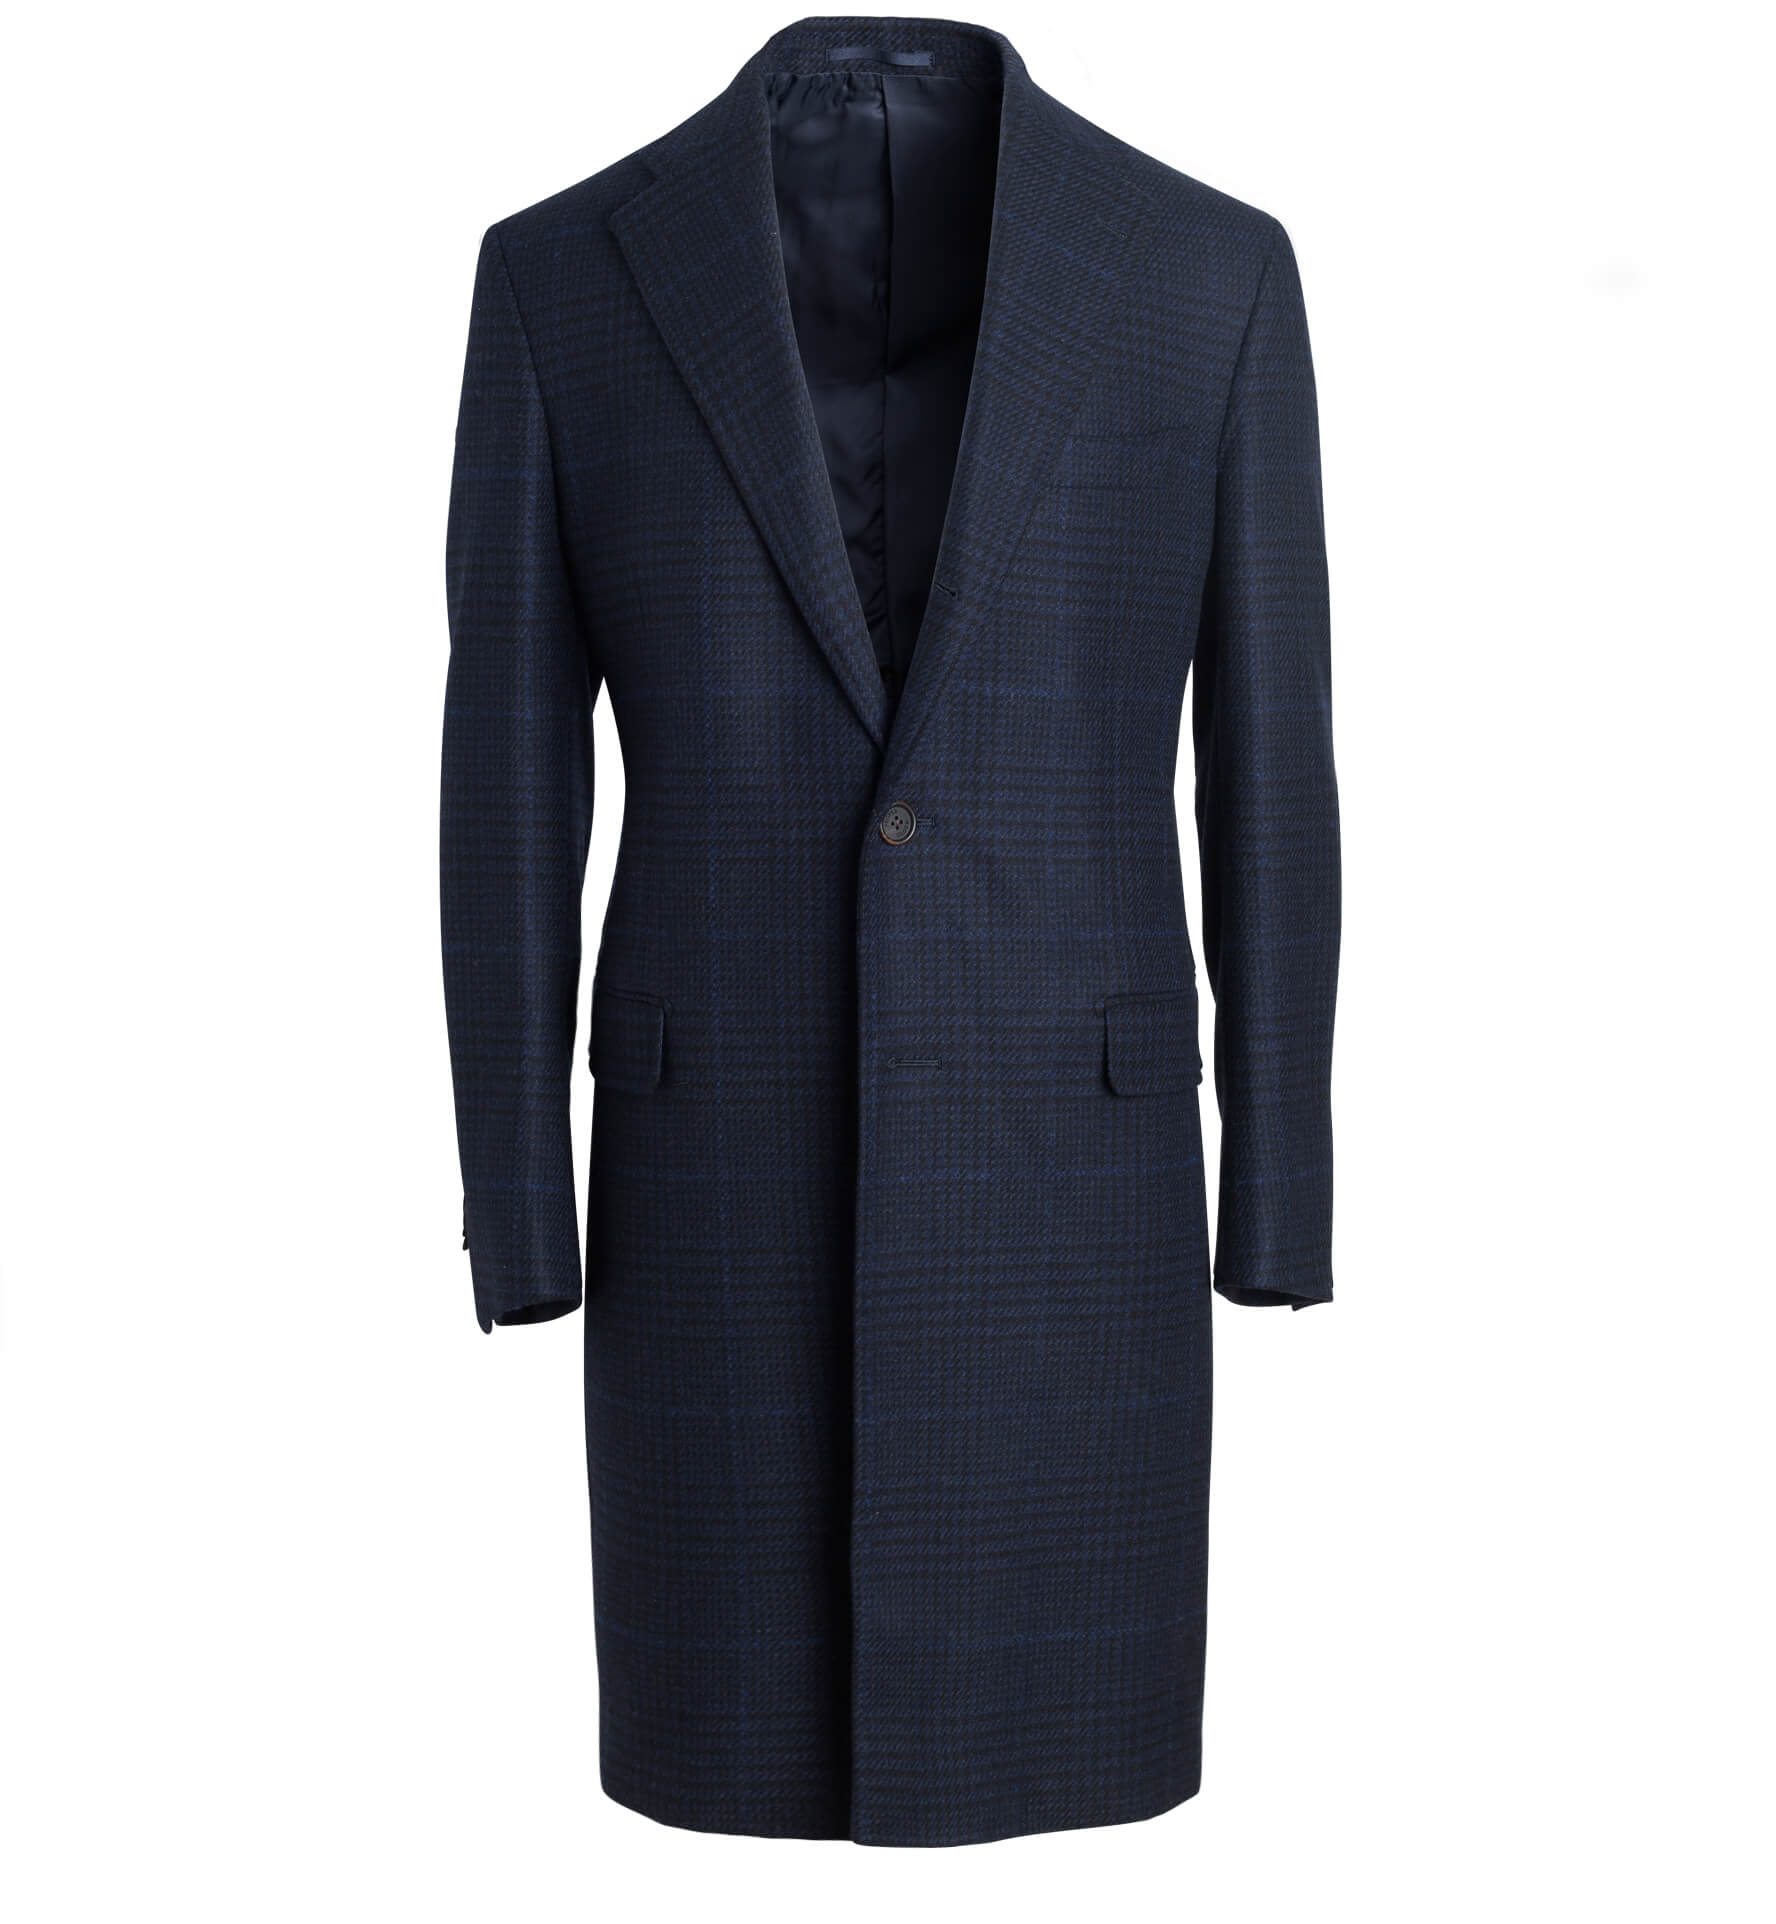 Zoom Image of Bleecker Navy Plaid Wool and Cashmere Coat